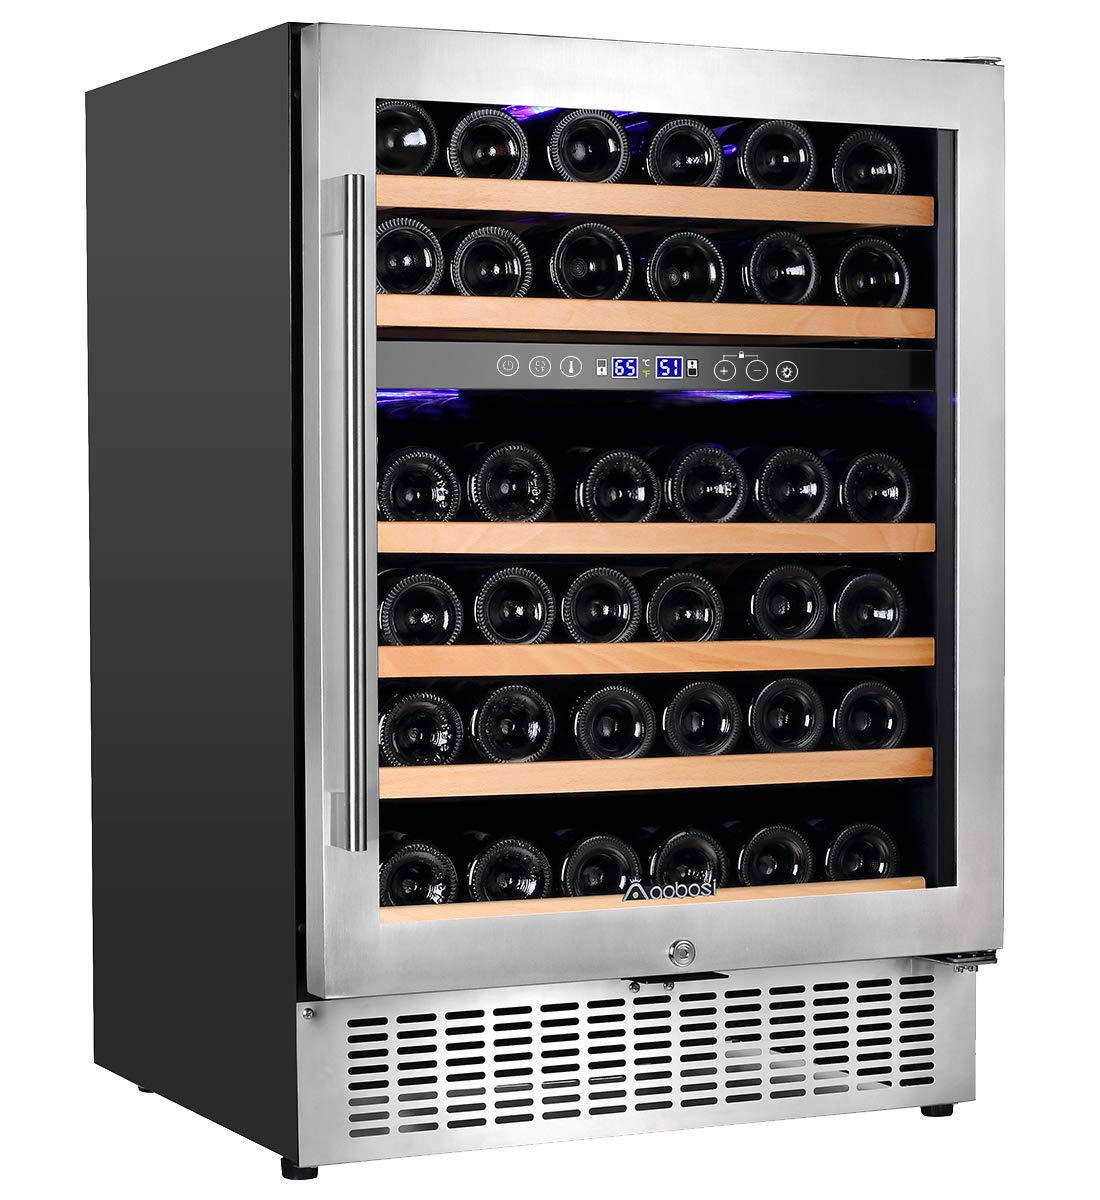 【Upgraded】Aobosi 24'' Dual Zone Wine Cooler 46 Bottle Built in and Freestanding Wine Refrigerator for Reds,Whites,Champagne |Stainless Steel Tempered Glass Door | Quiet Operation | LED display